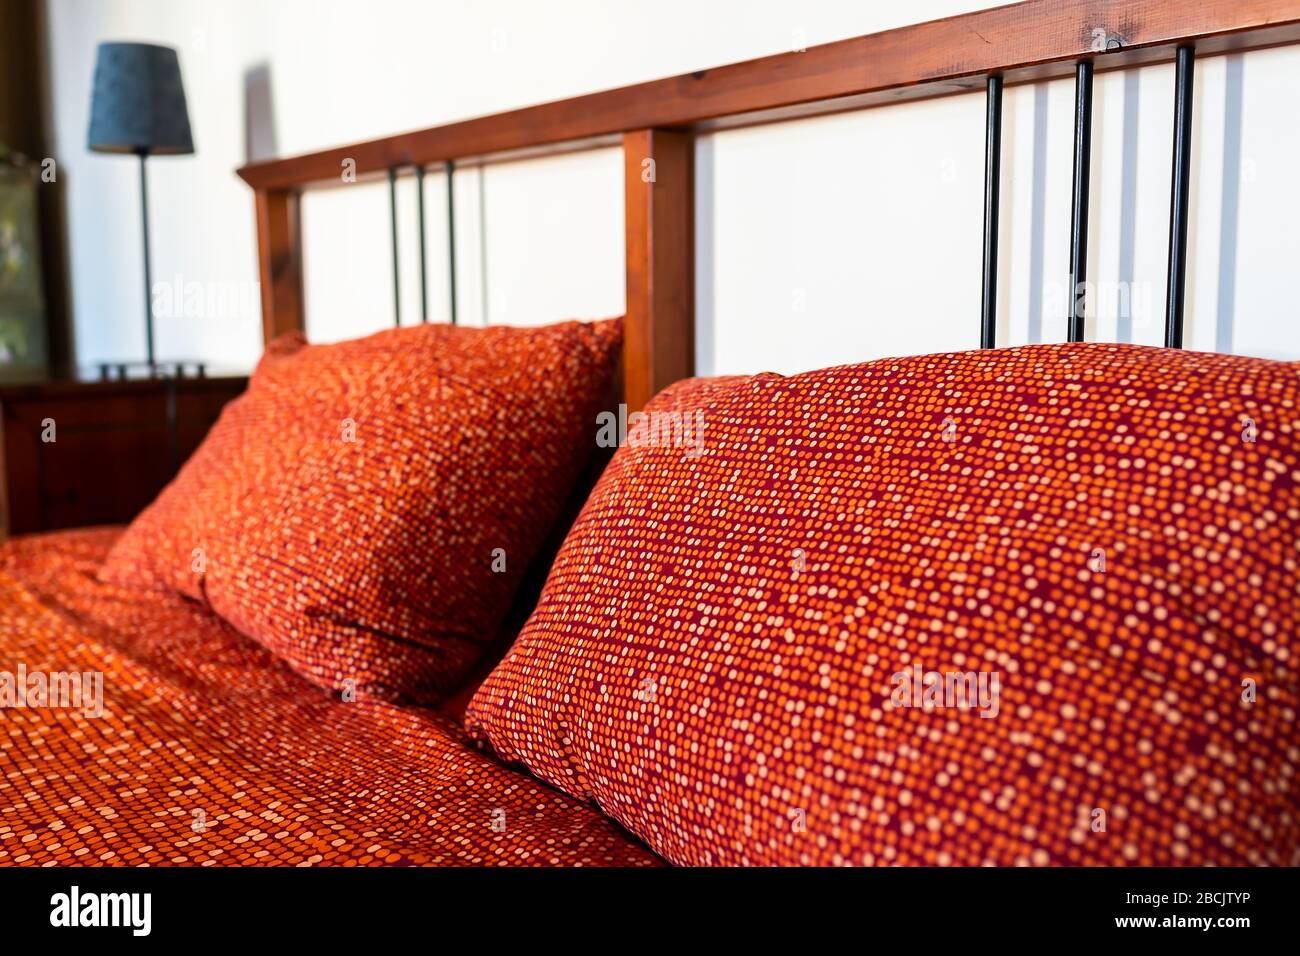 Antique Vintage Retro Bedroom With Red Orange Pattern Bed Pillow In Room With Wooden Headboard In Home In Europe Stock Photo Alamy